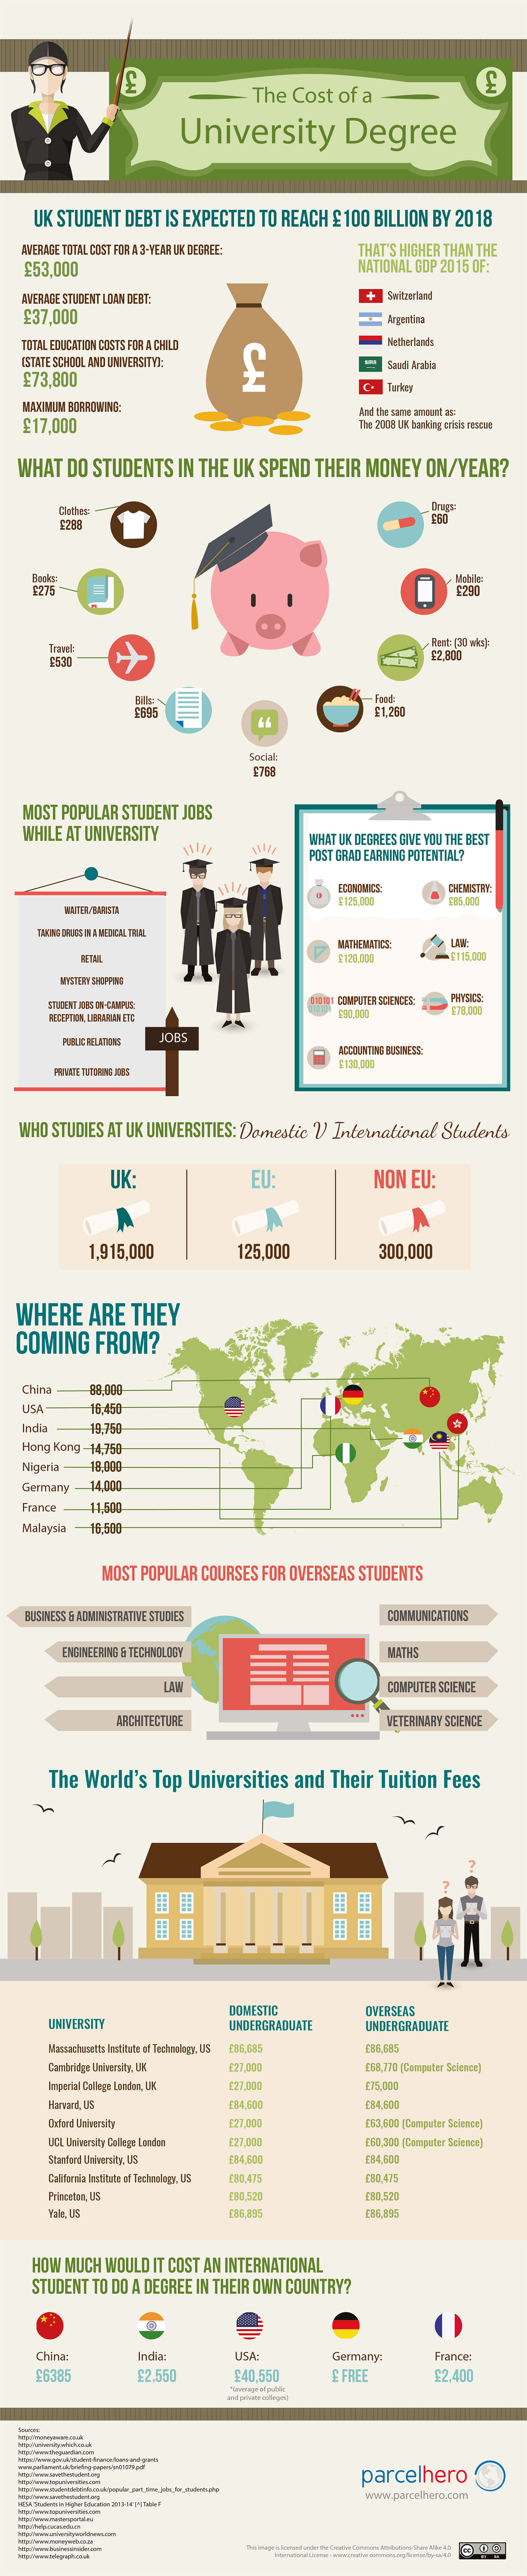 cost-of-a-university-degree-infographic